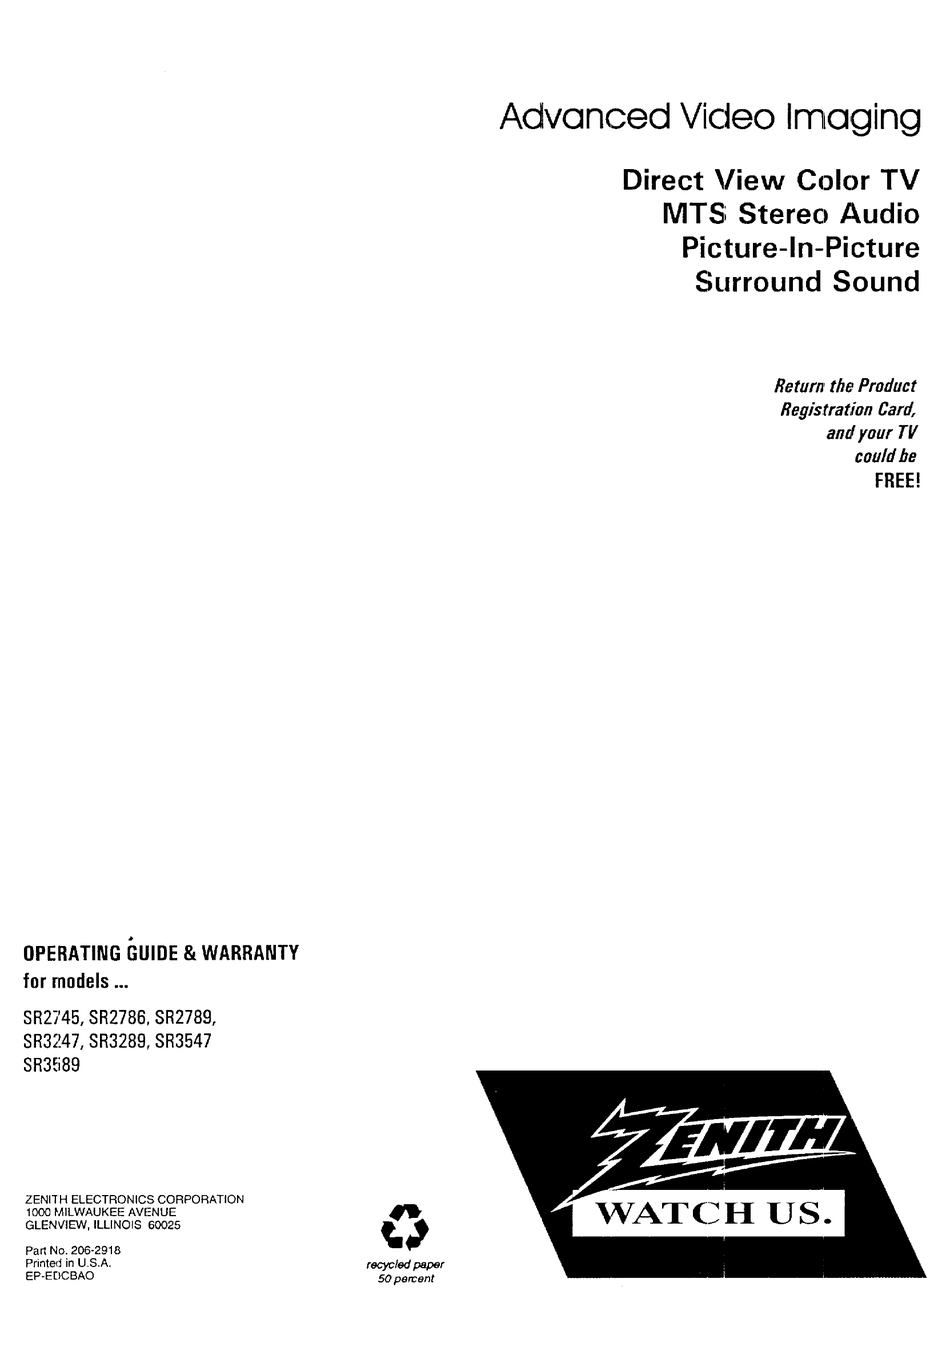 ZENITH SR2745 OPERATING MANUAL & WARRANTY Pdf Download